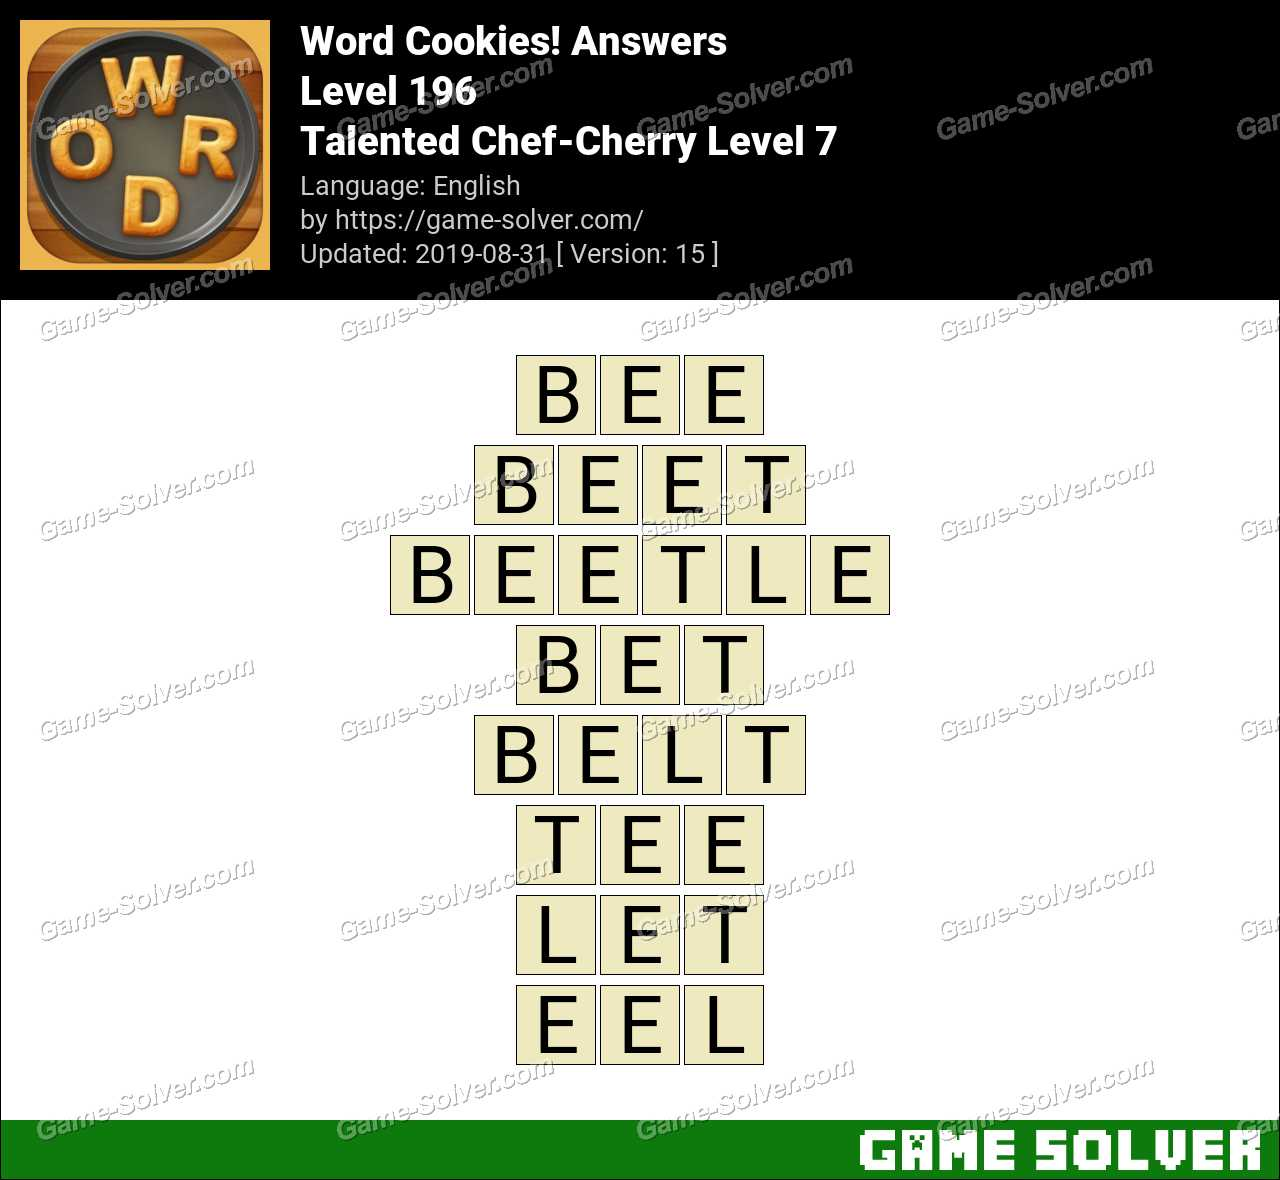 Word Cookies Talented Chef-Cherry Level 7 Answers